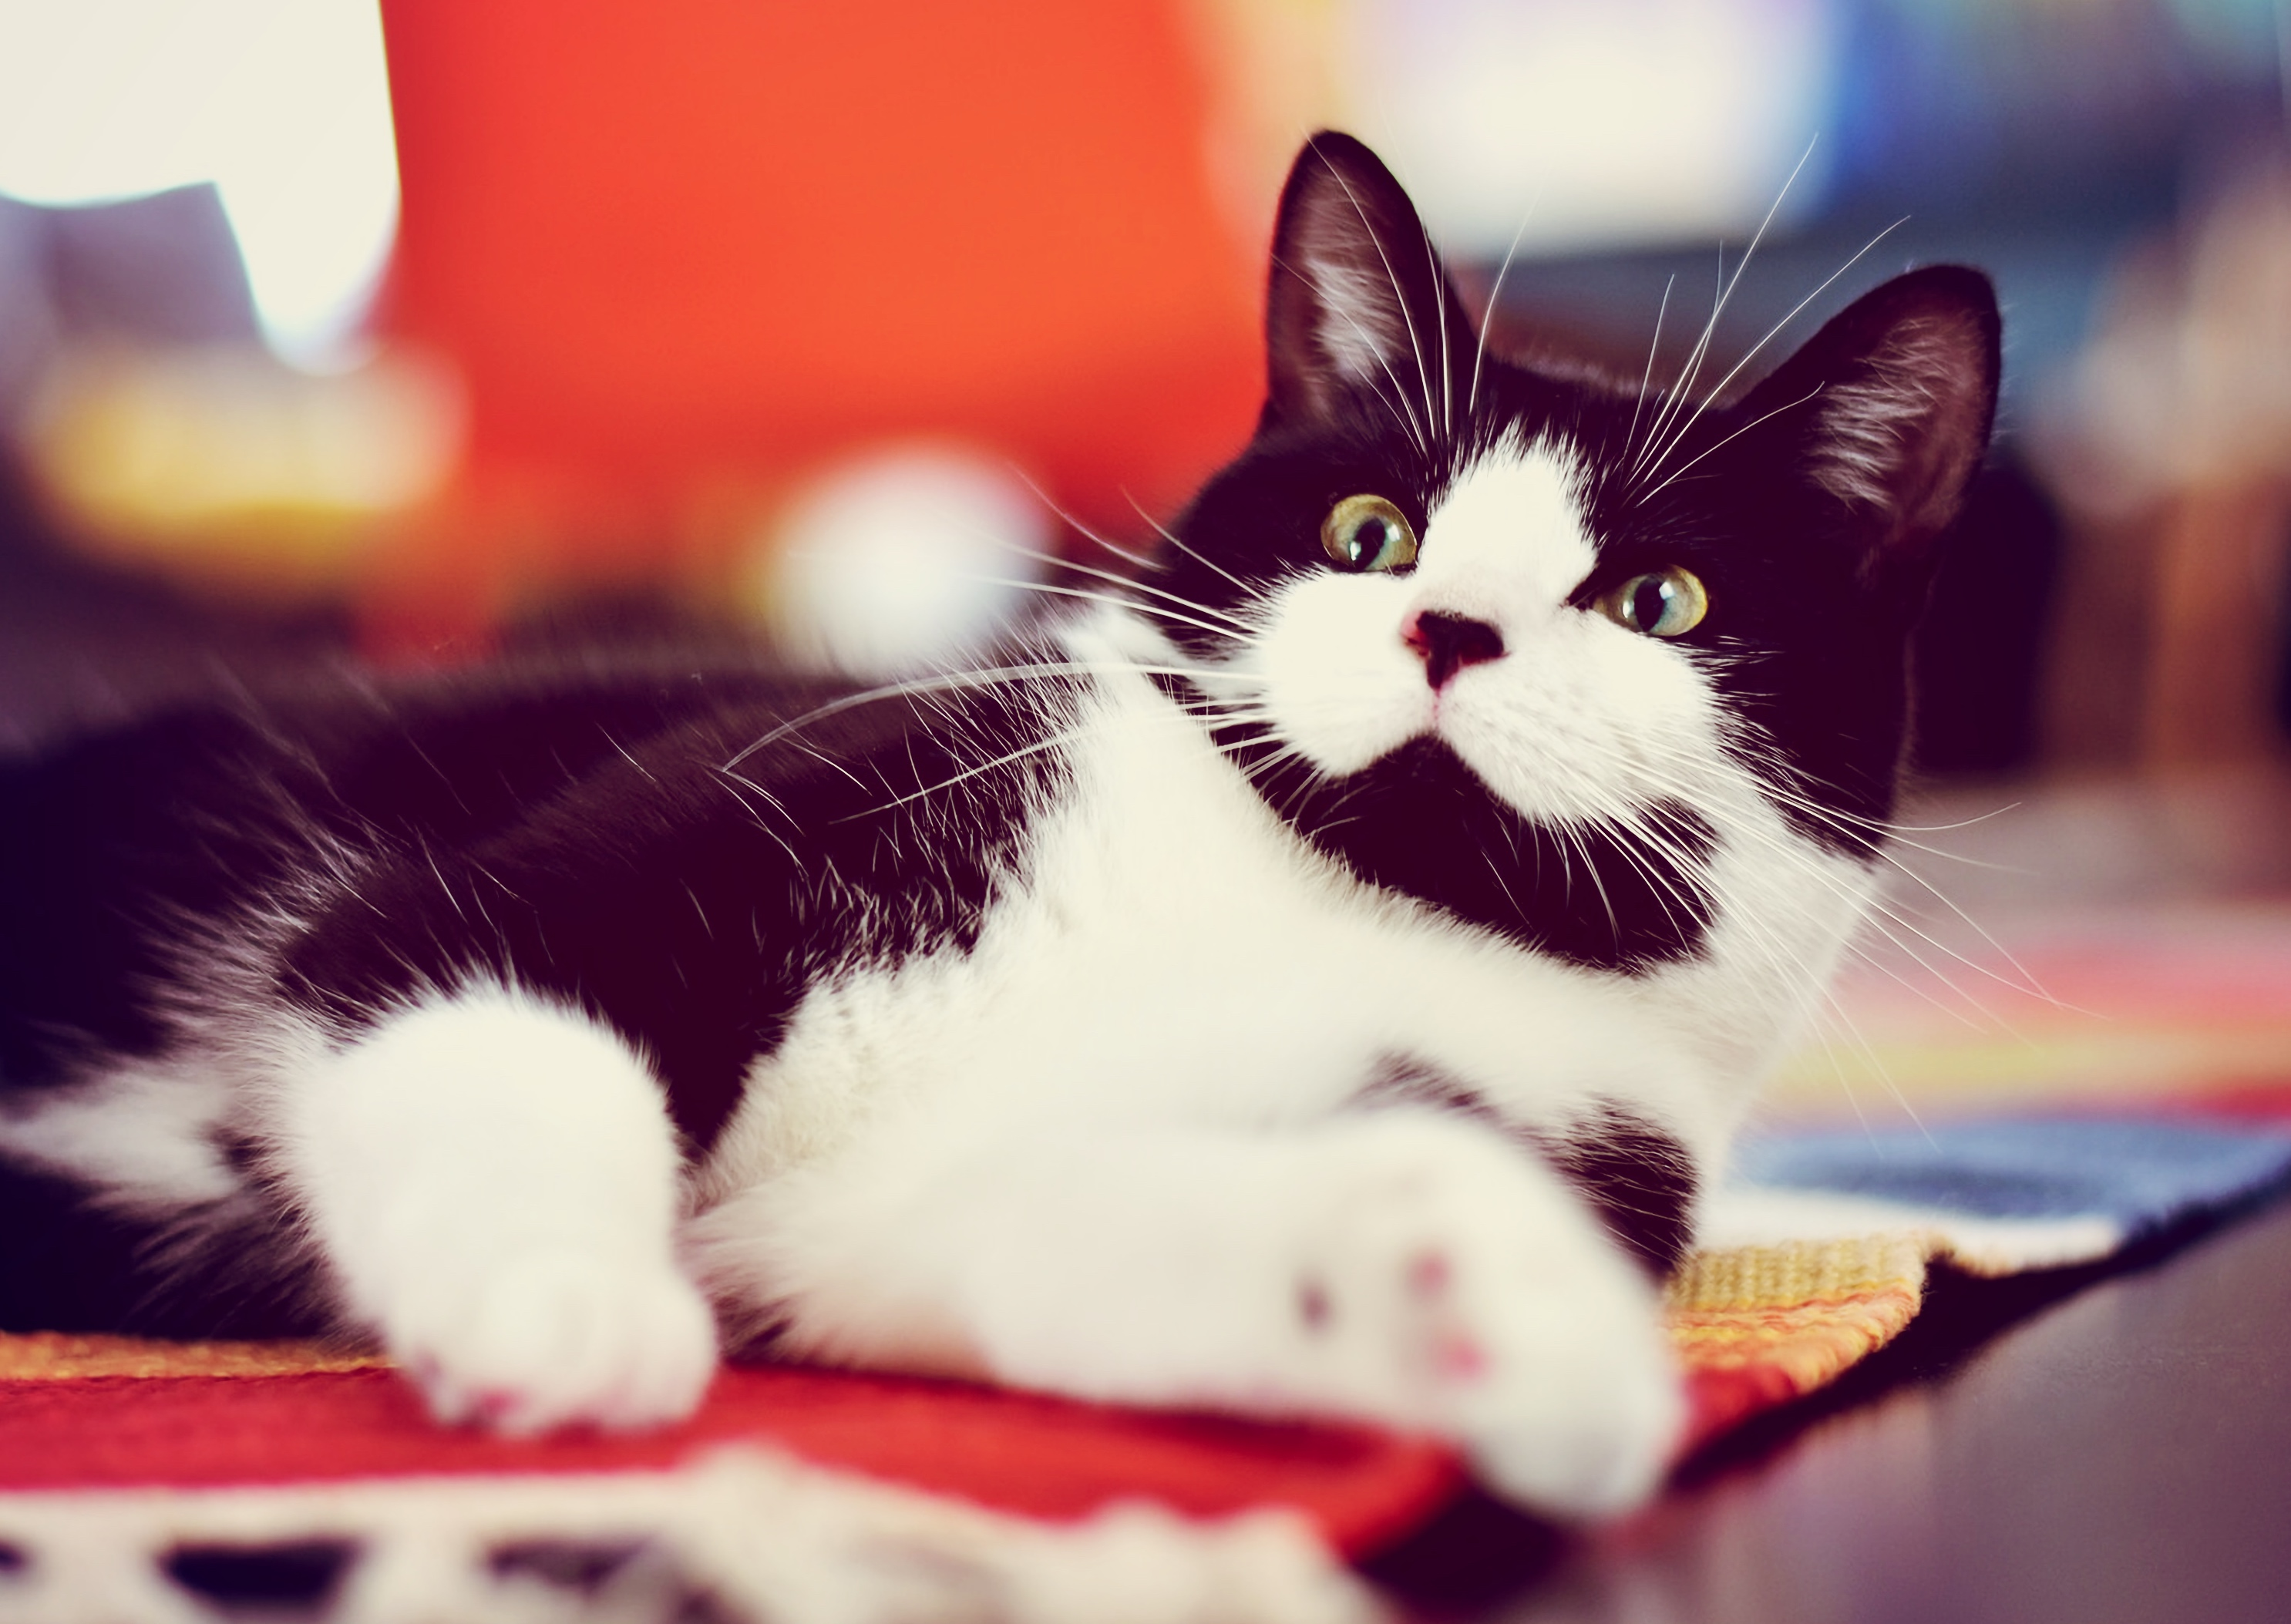 132306 download wallpaper Animals, Cat, Spotted, Spotty, Nice, Sweetheart, Lies screensavers and pictures for free